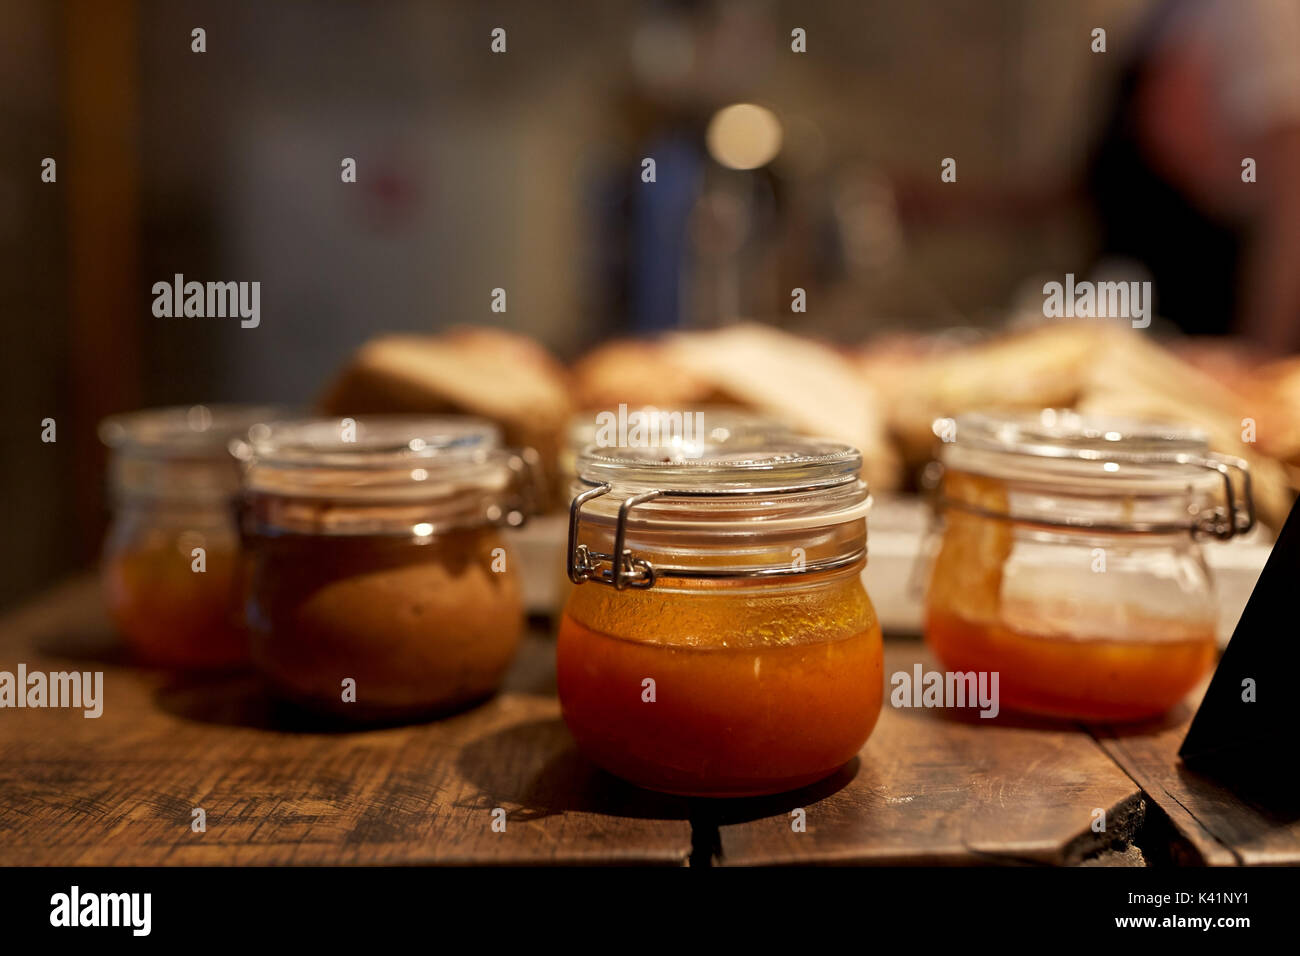 craft jam or sauce at grocery store - Stock Image